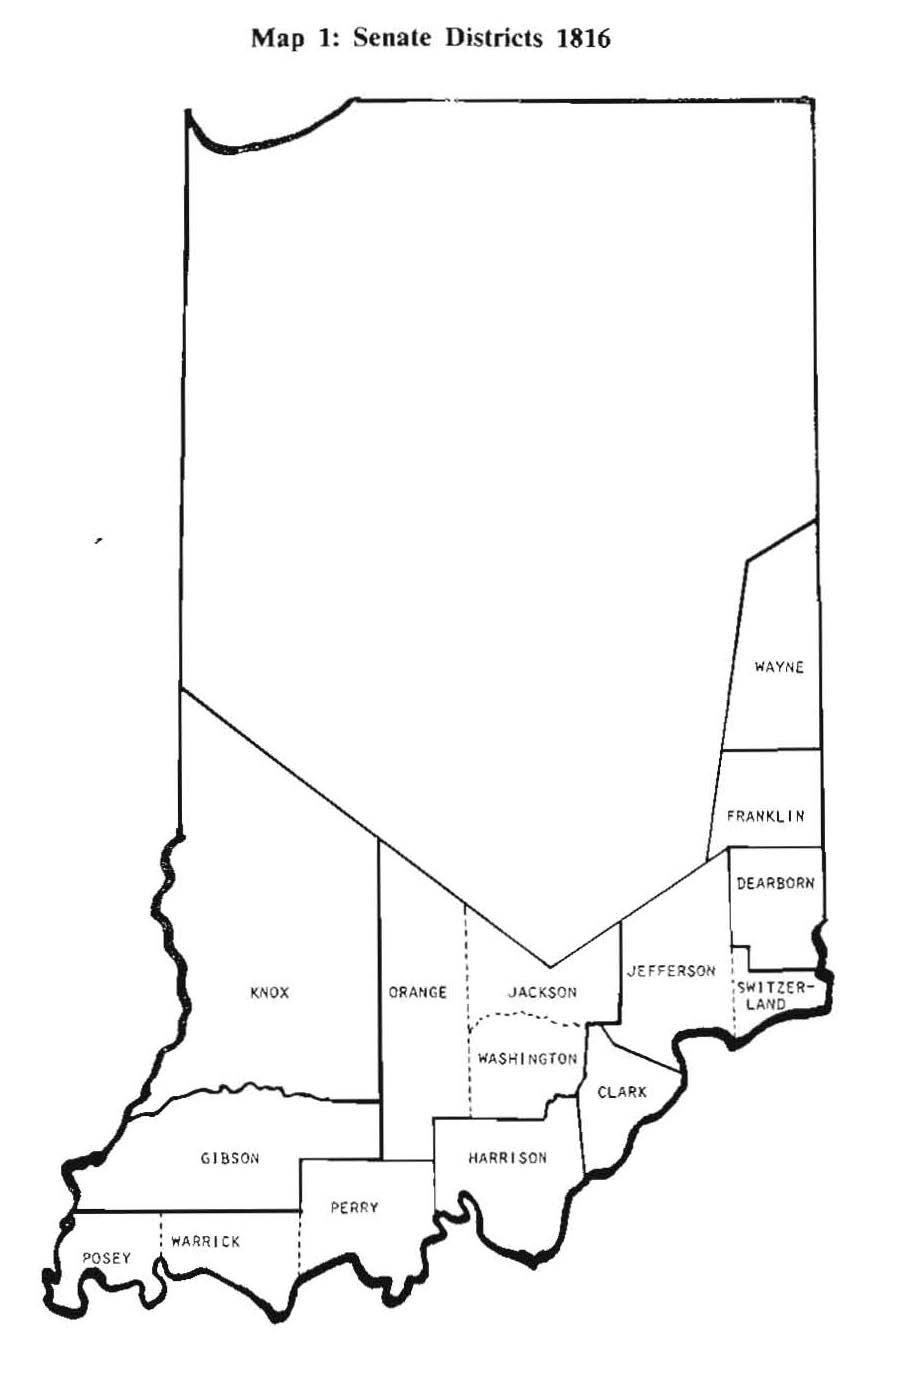 Map of Indiana showing Senate Districts in 1816